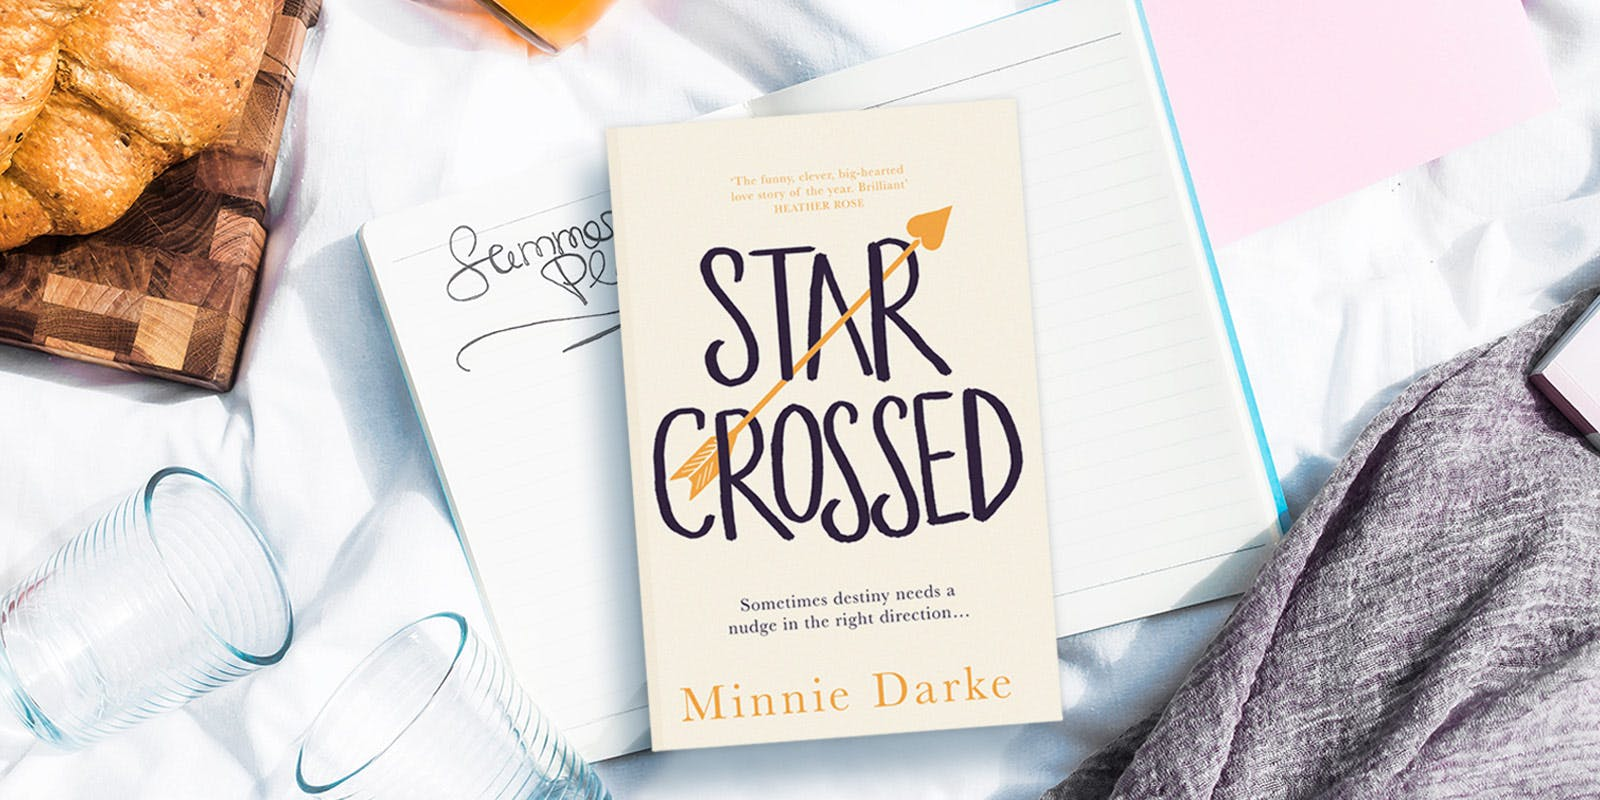 Star-crossed book club notes